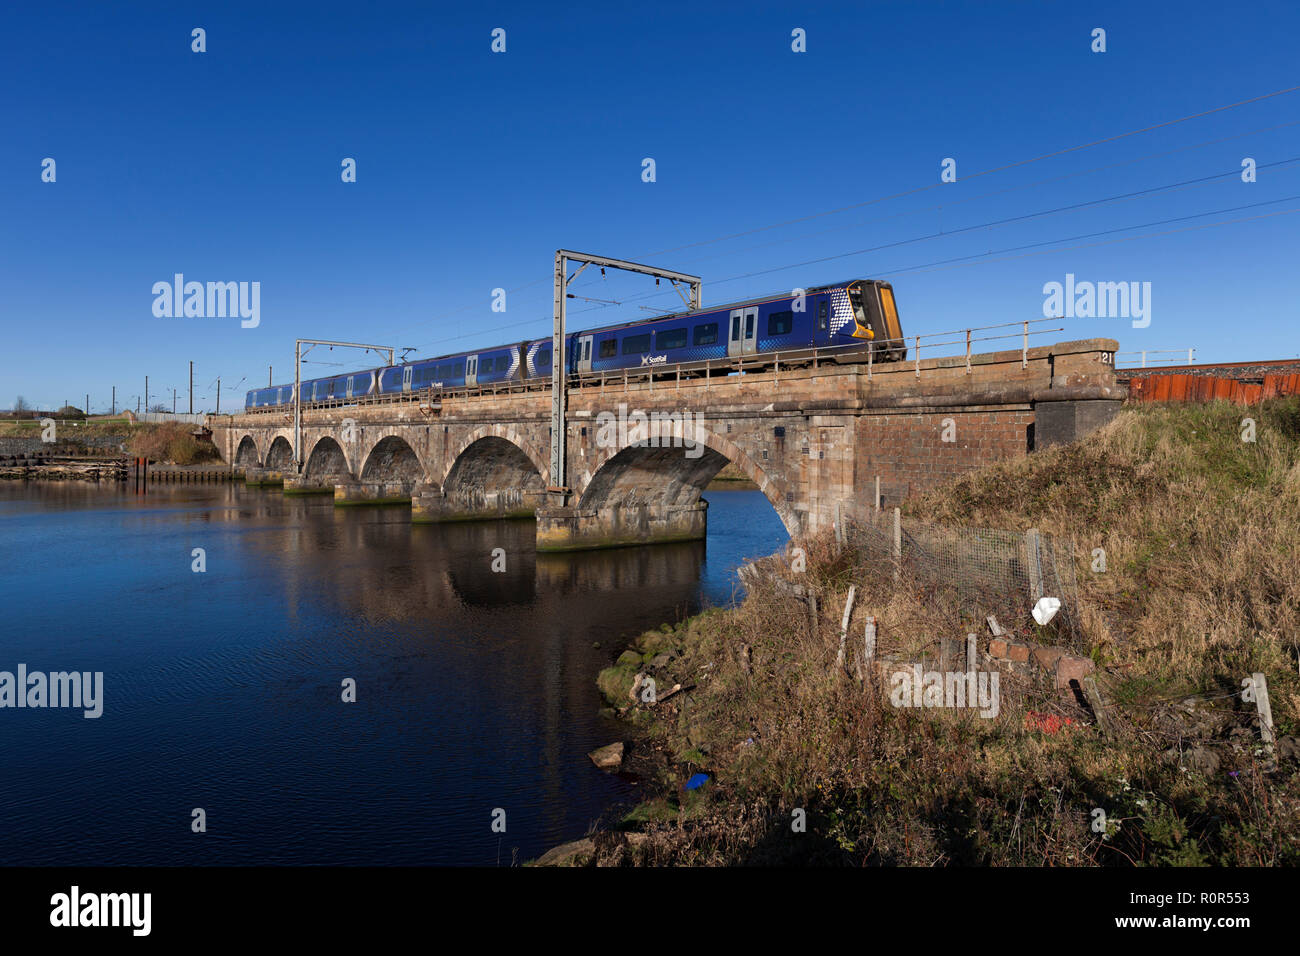 A Scotrail class 380 electric train crossing Queens Viaduct, Irvine,  over the river Irvine in Ayrshire  on the Ayrshire coast line. - Stock Image